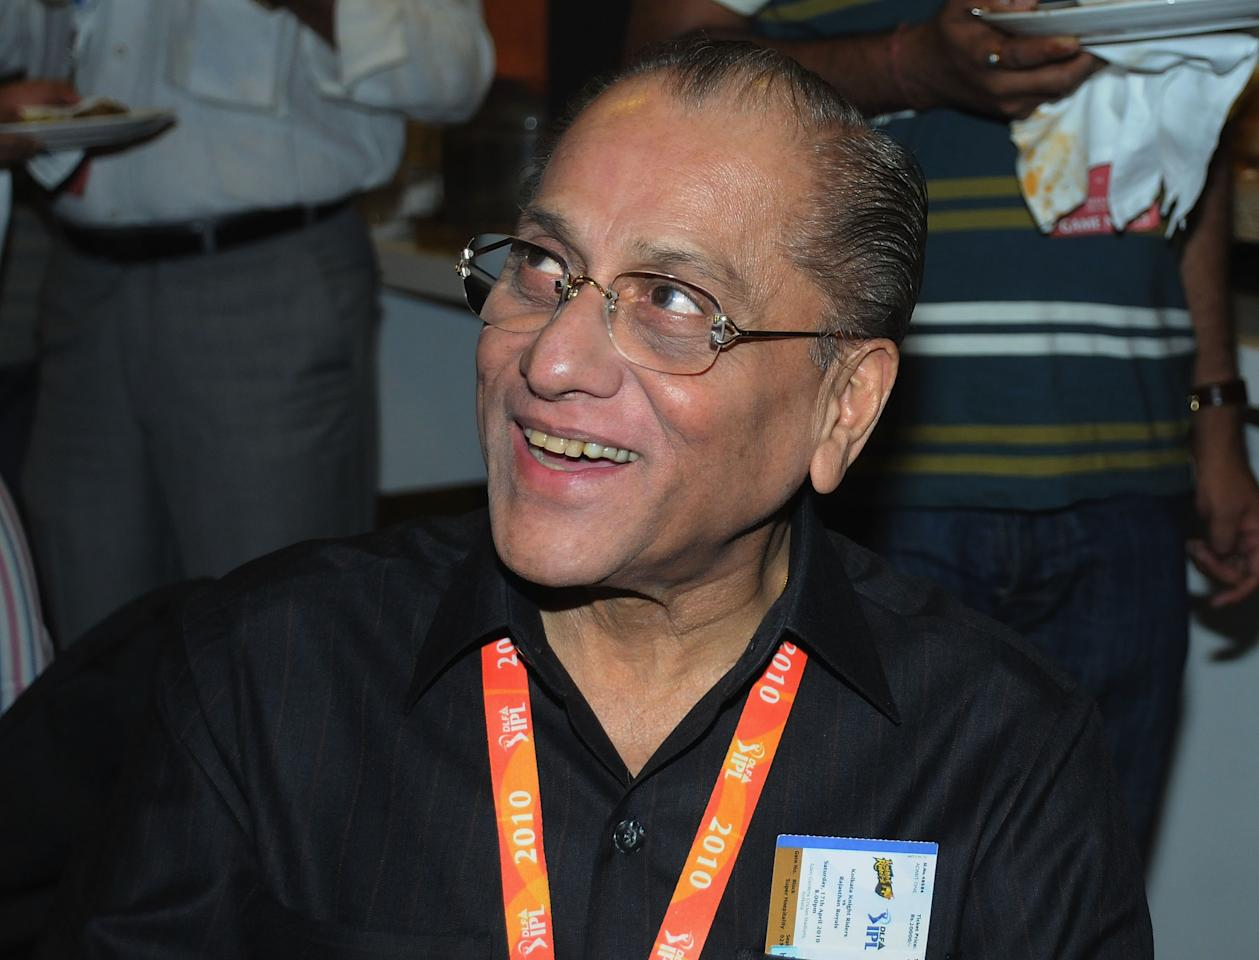 KOLKATA, INDIA - APRIL 17: Jagmohan Dalmiya attends the 2010 DLF Indian Premier League T20 group stage match between Kolkata Knight Riders and Rajasthan Royals played at Eden Gardens on April 17, 2010 in Kolkata, India.  (Photo by Yogen Shah-IPL 2010/IPL via Getty Images)